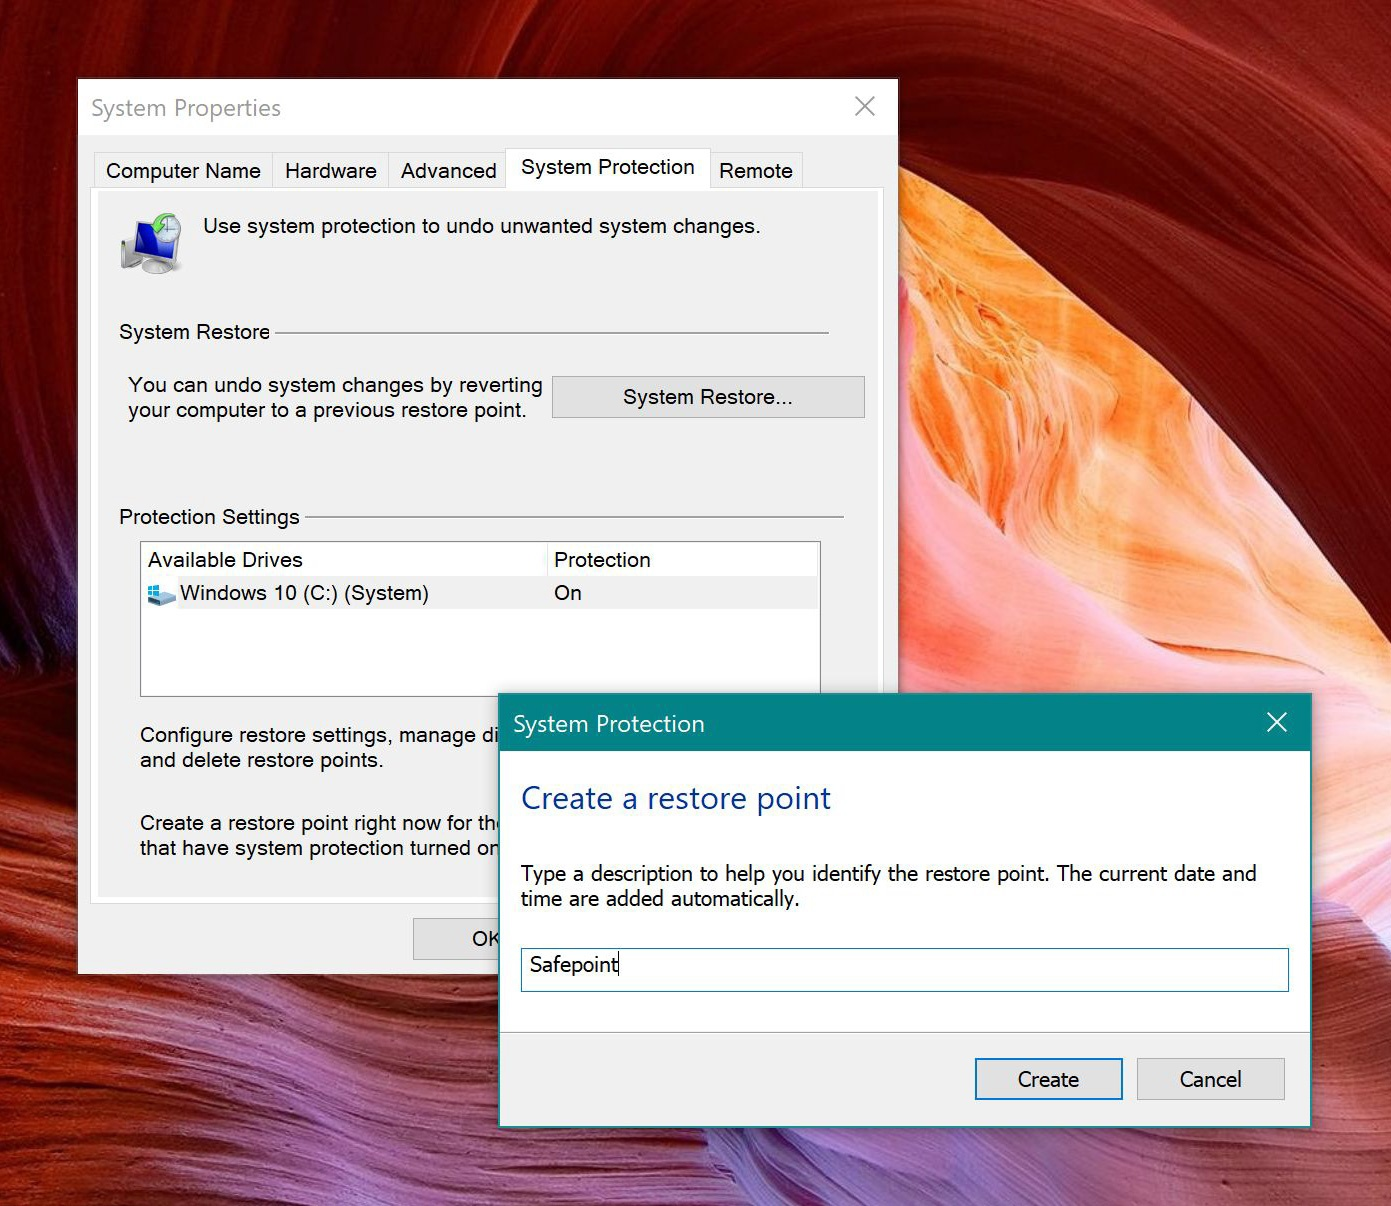 Creating a restore point in Windows